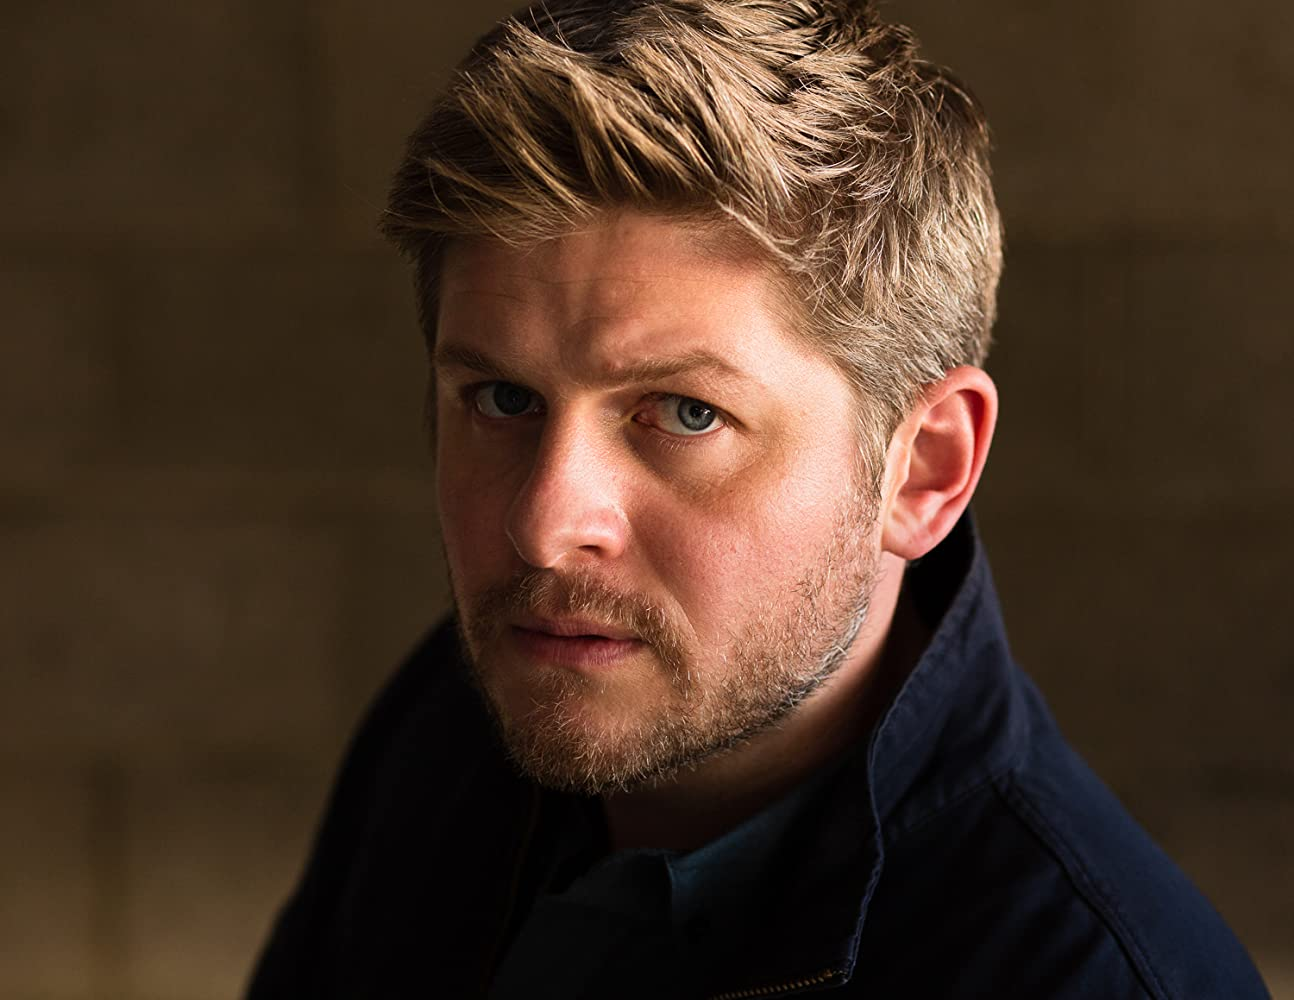 michael grant terry movies and tv shows